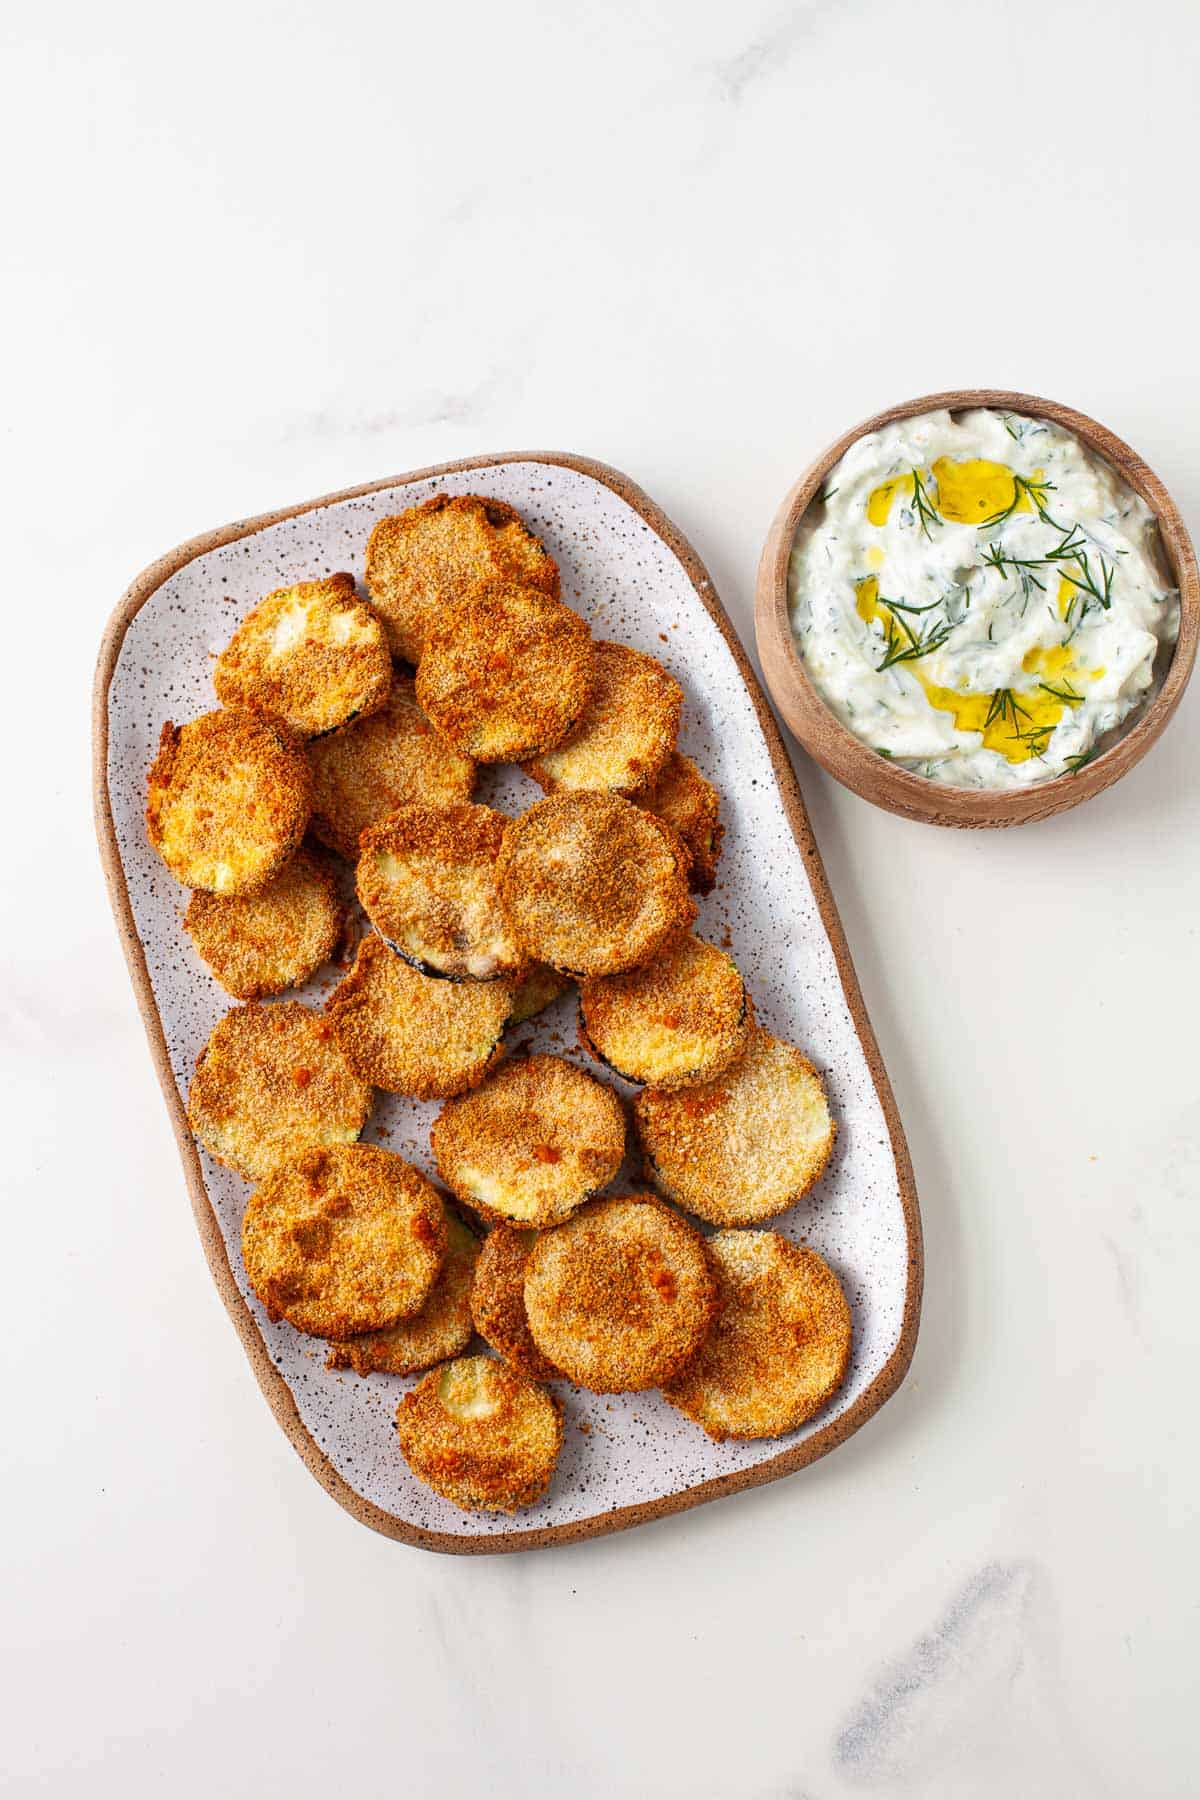 crispy zucchini chips on a plate next to a bowl of dipping sauce